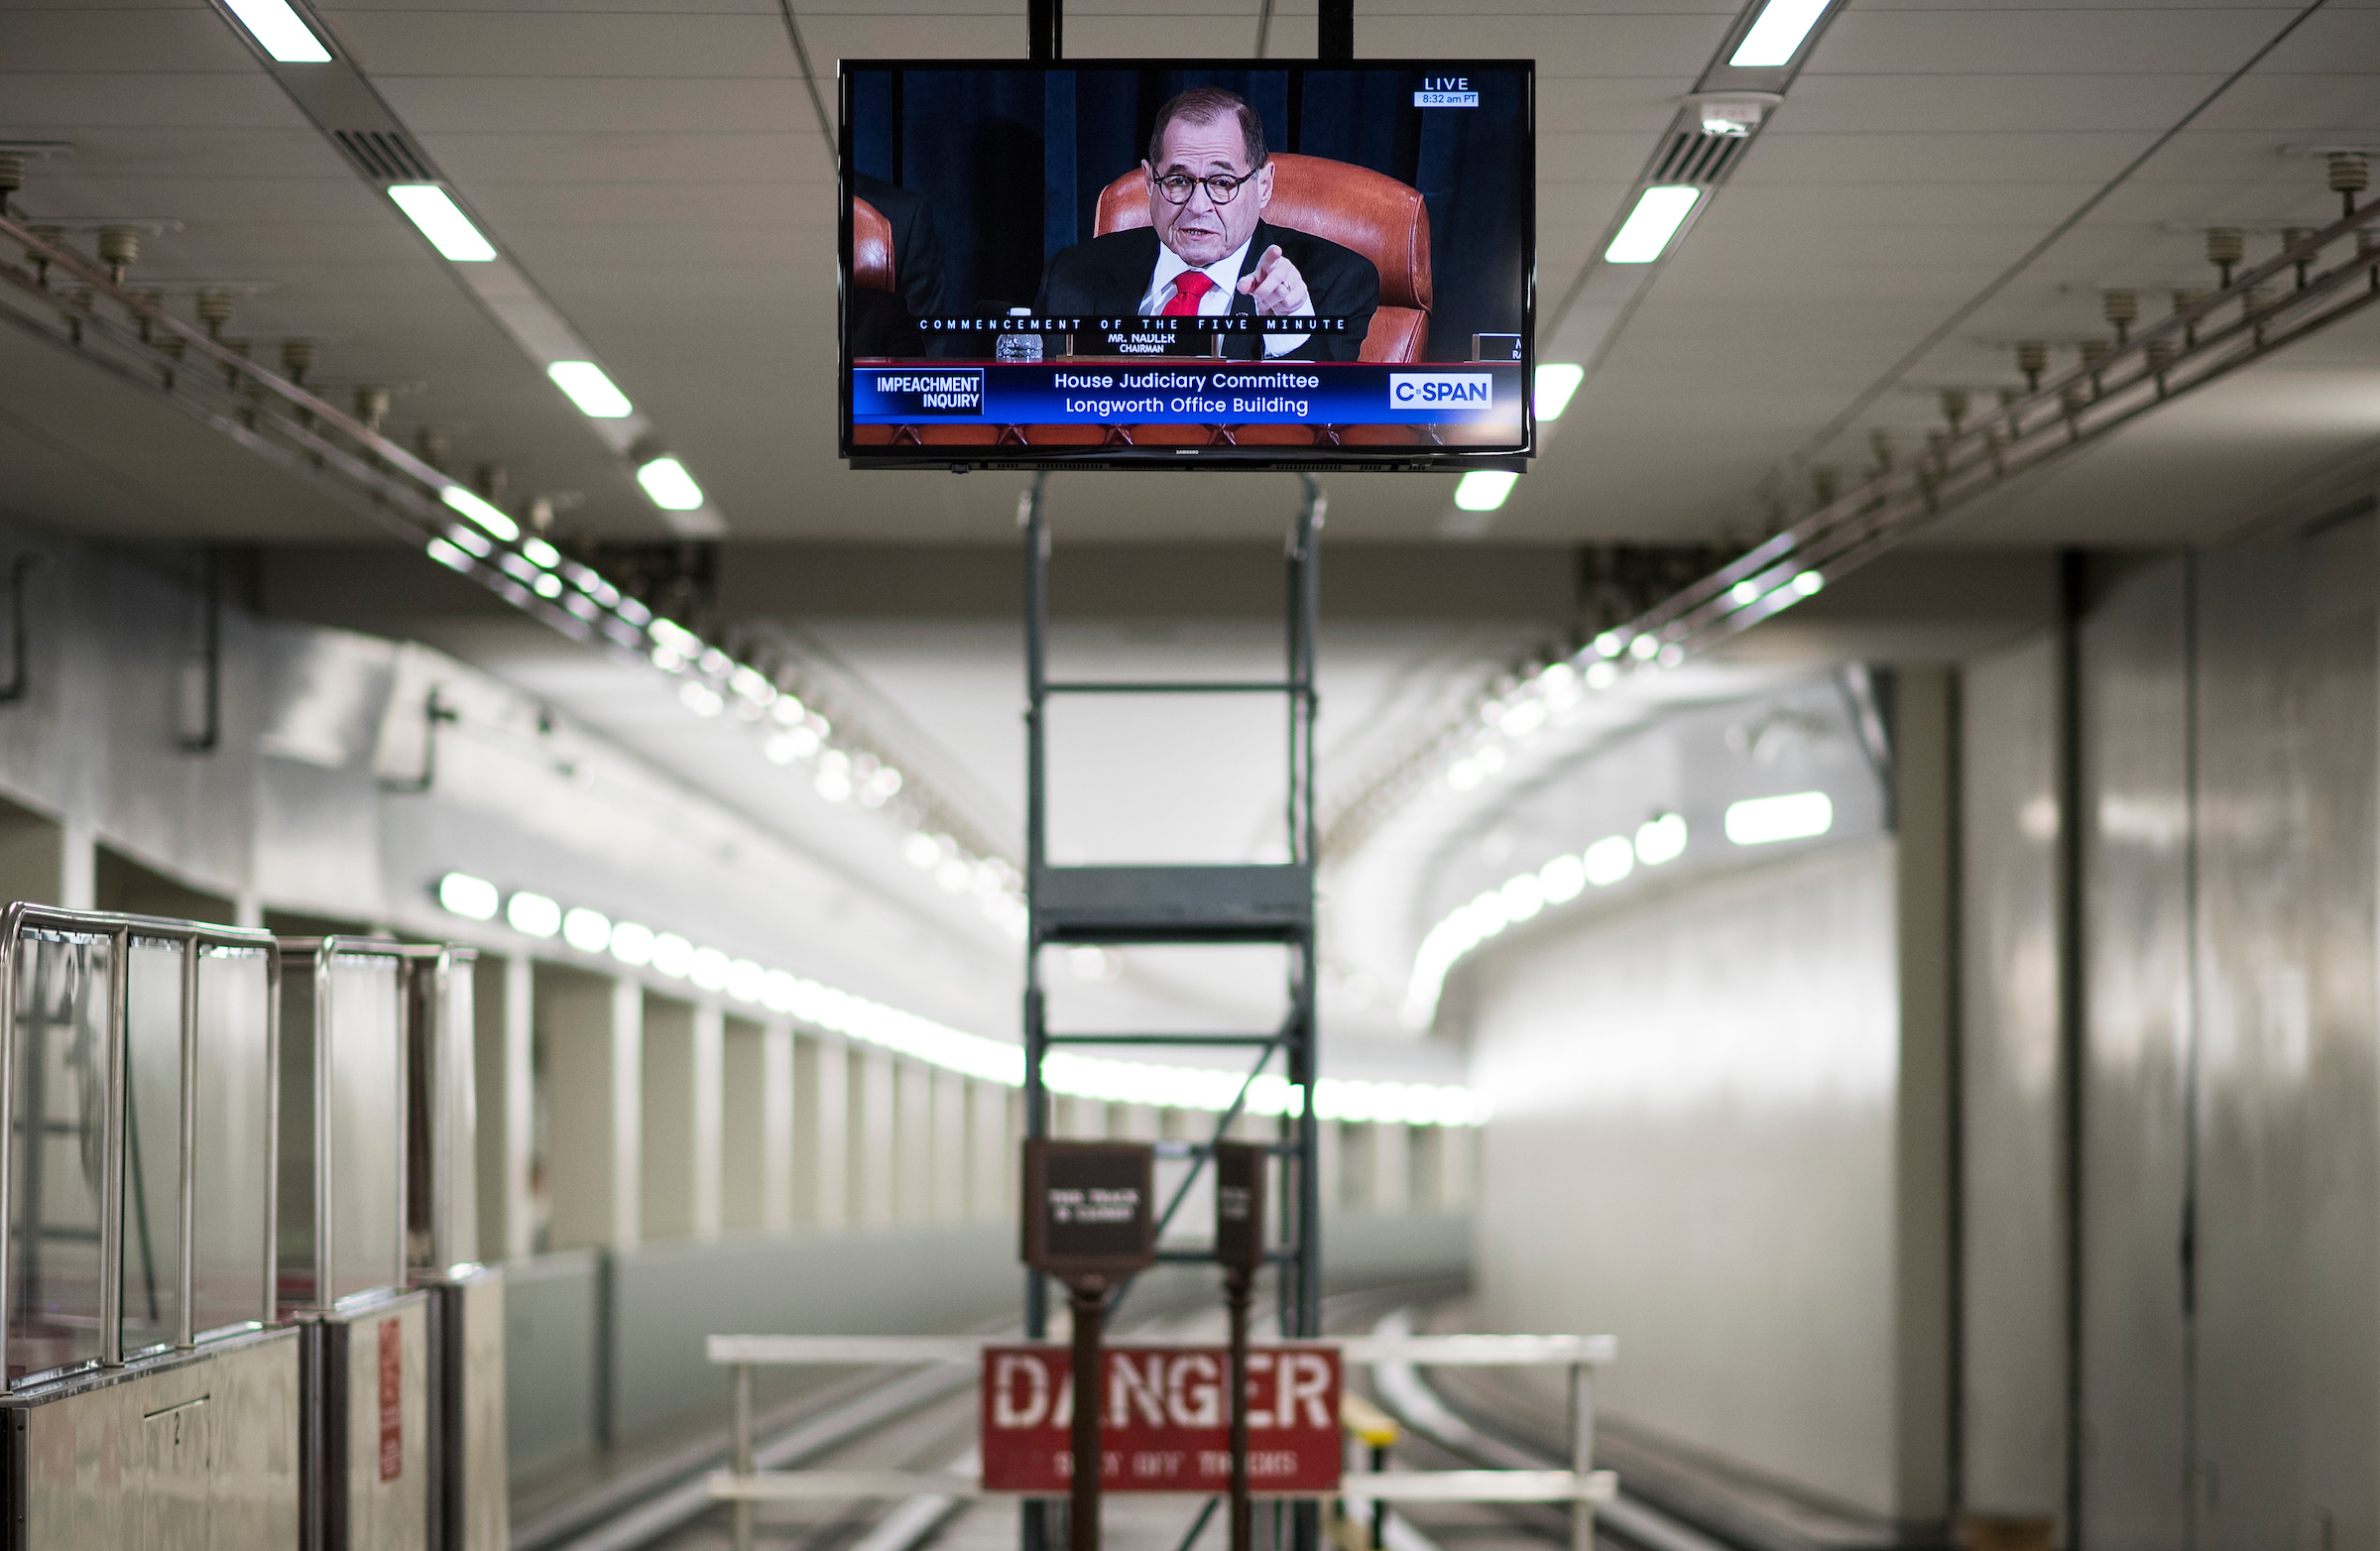 """UNITED STATES - DECEMBER 9: Chairman Jerrold Nadler, D-N.Y., appears on a tv monitor in the Rayburn subway as he calls for a recess in the House Judiciary Committee hearing on """"Counsel Presentations of Evidence in the Impeachment Inquiry of President Donald Trump."""" on Monday, Dec. 9, 2019. (Photo By Bill Clark/CQ Roll Call)"""